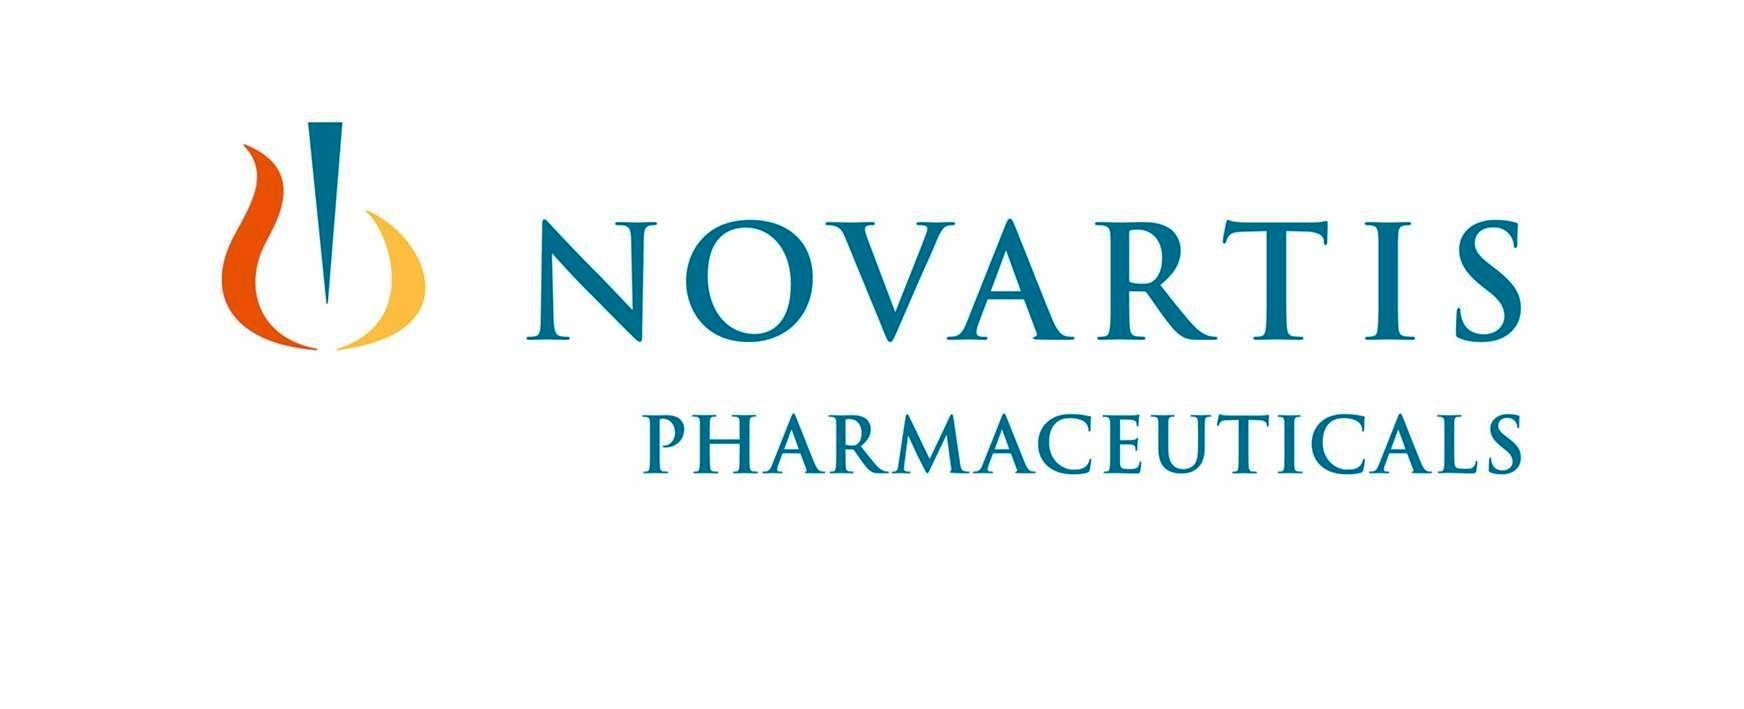 Novartis Logo - Novartis LOGO WITH CORRECT WHITE SPACE large – Society for ...